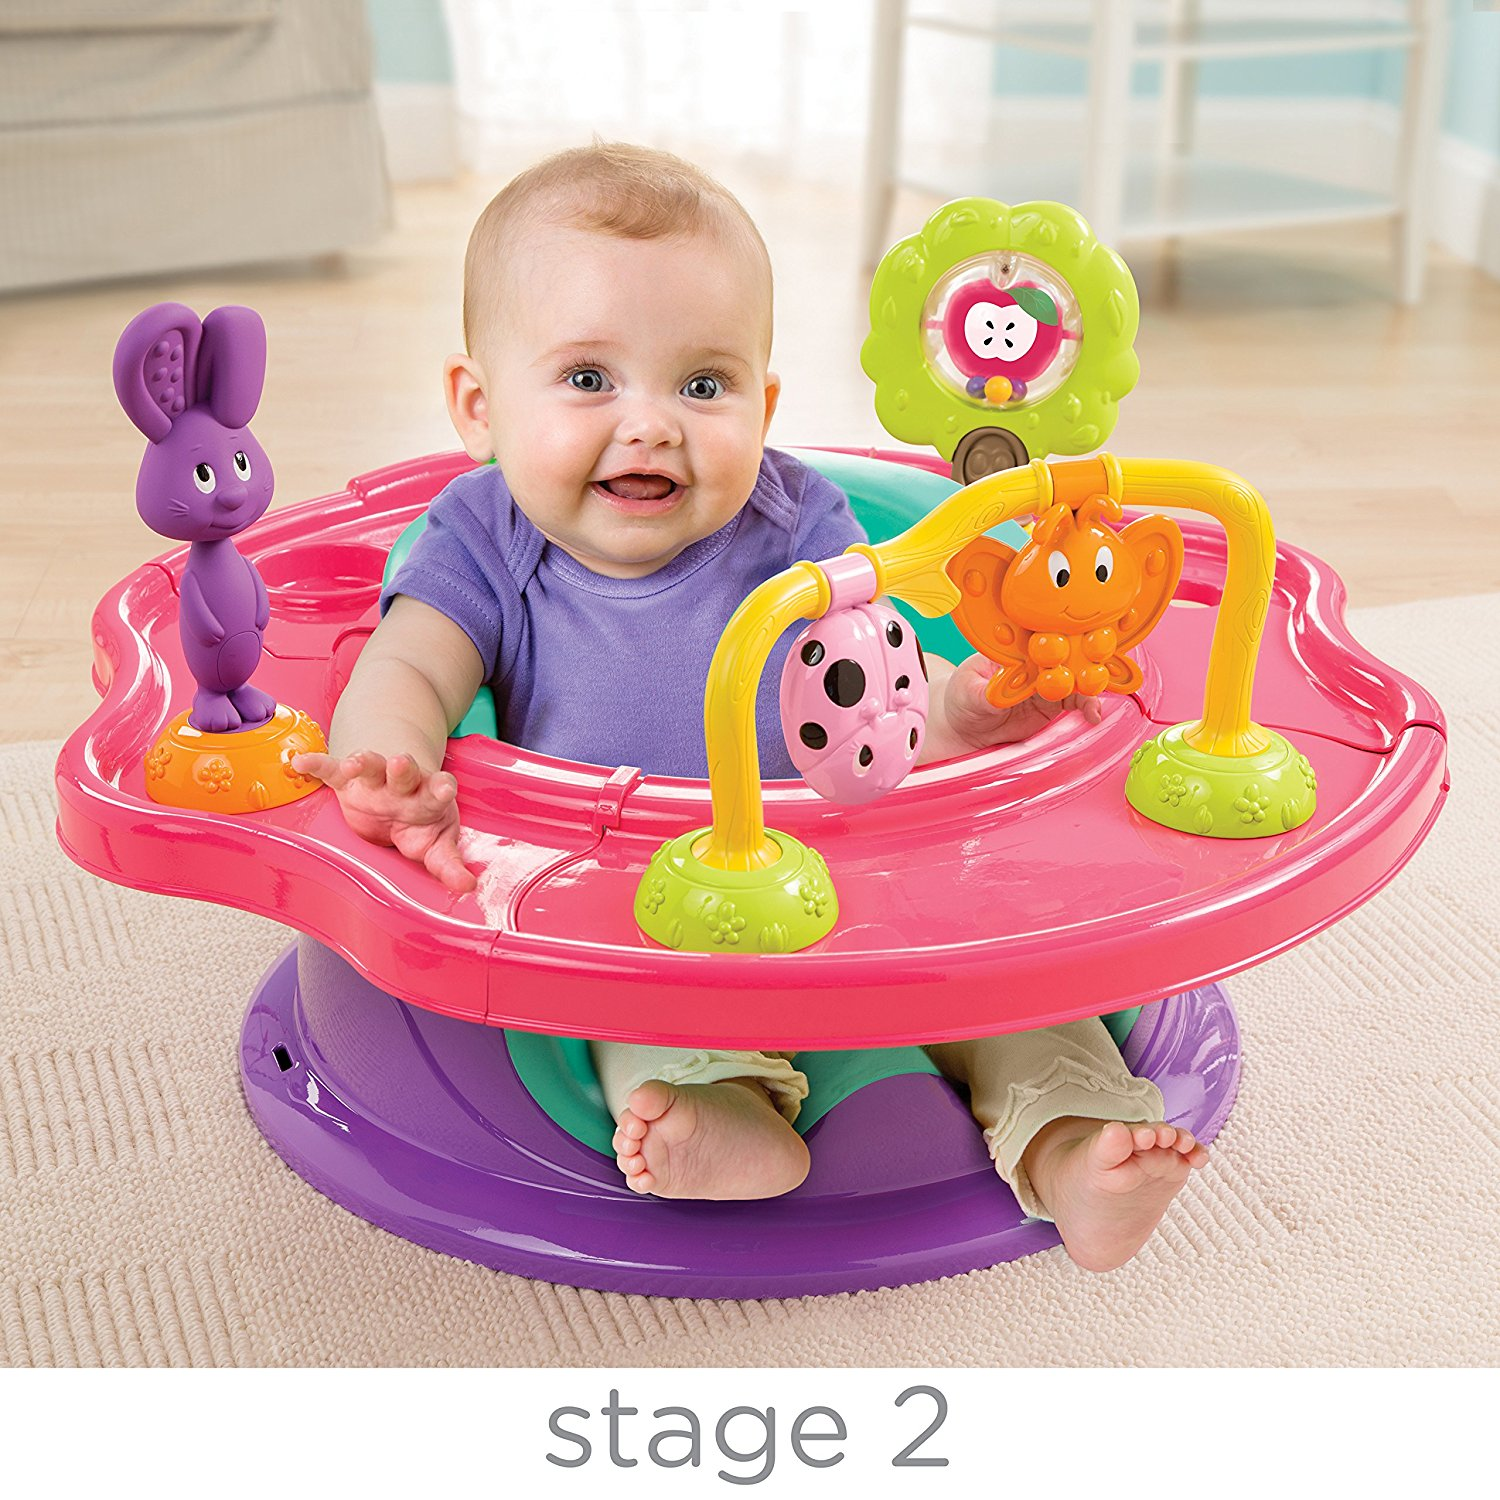 Booster & High Chair Summer 3 Stage Super Seat Forest Friend – Pink